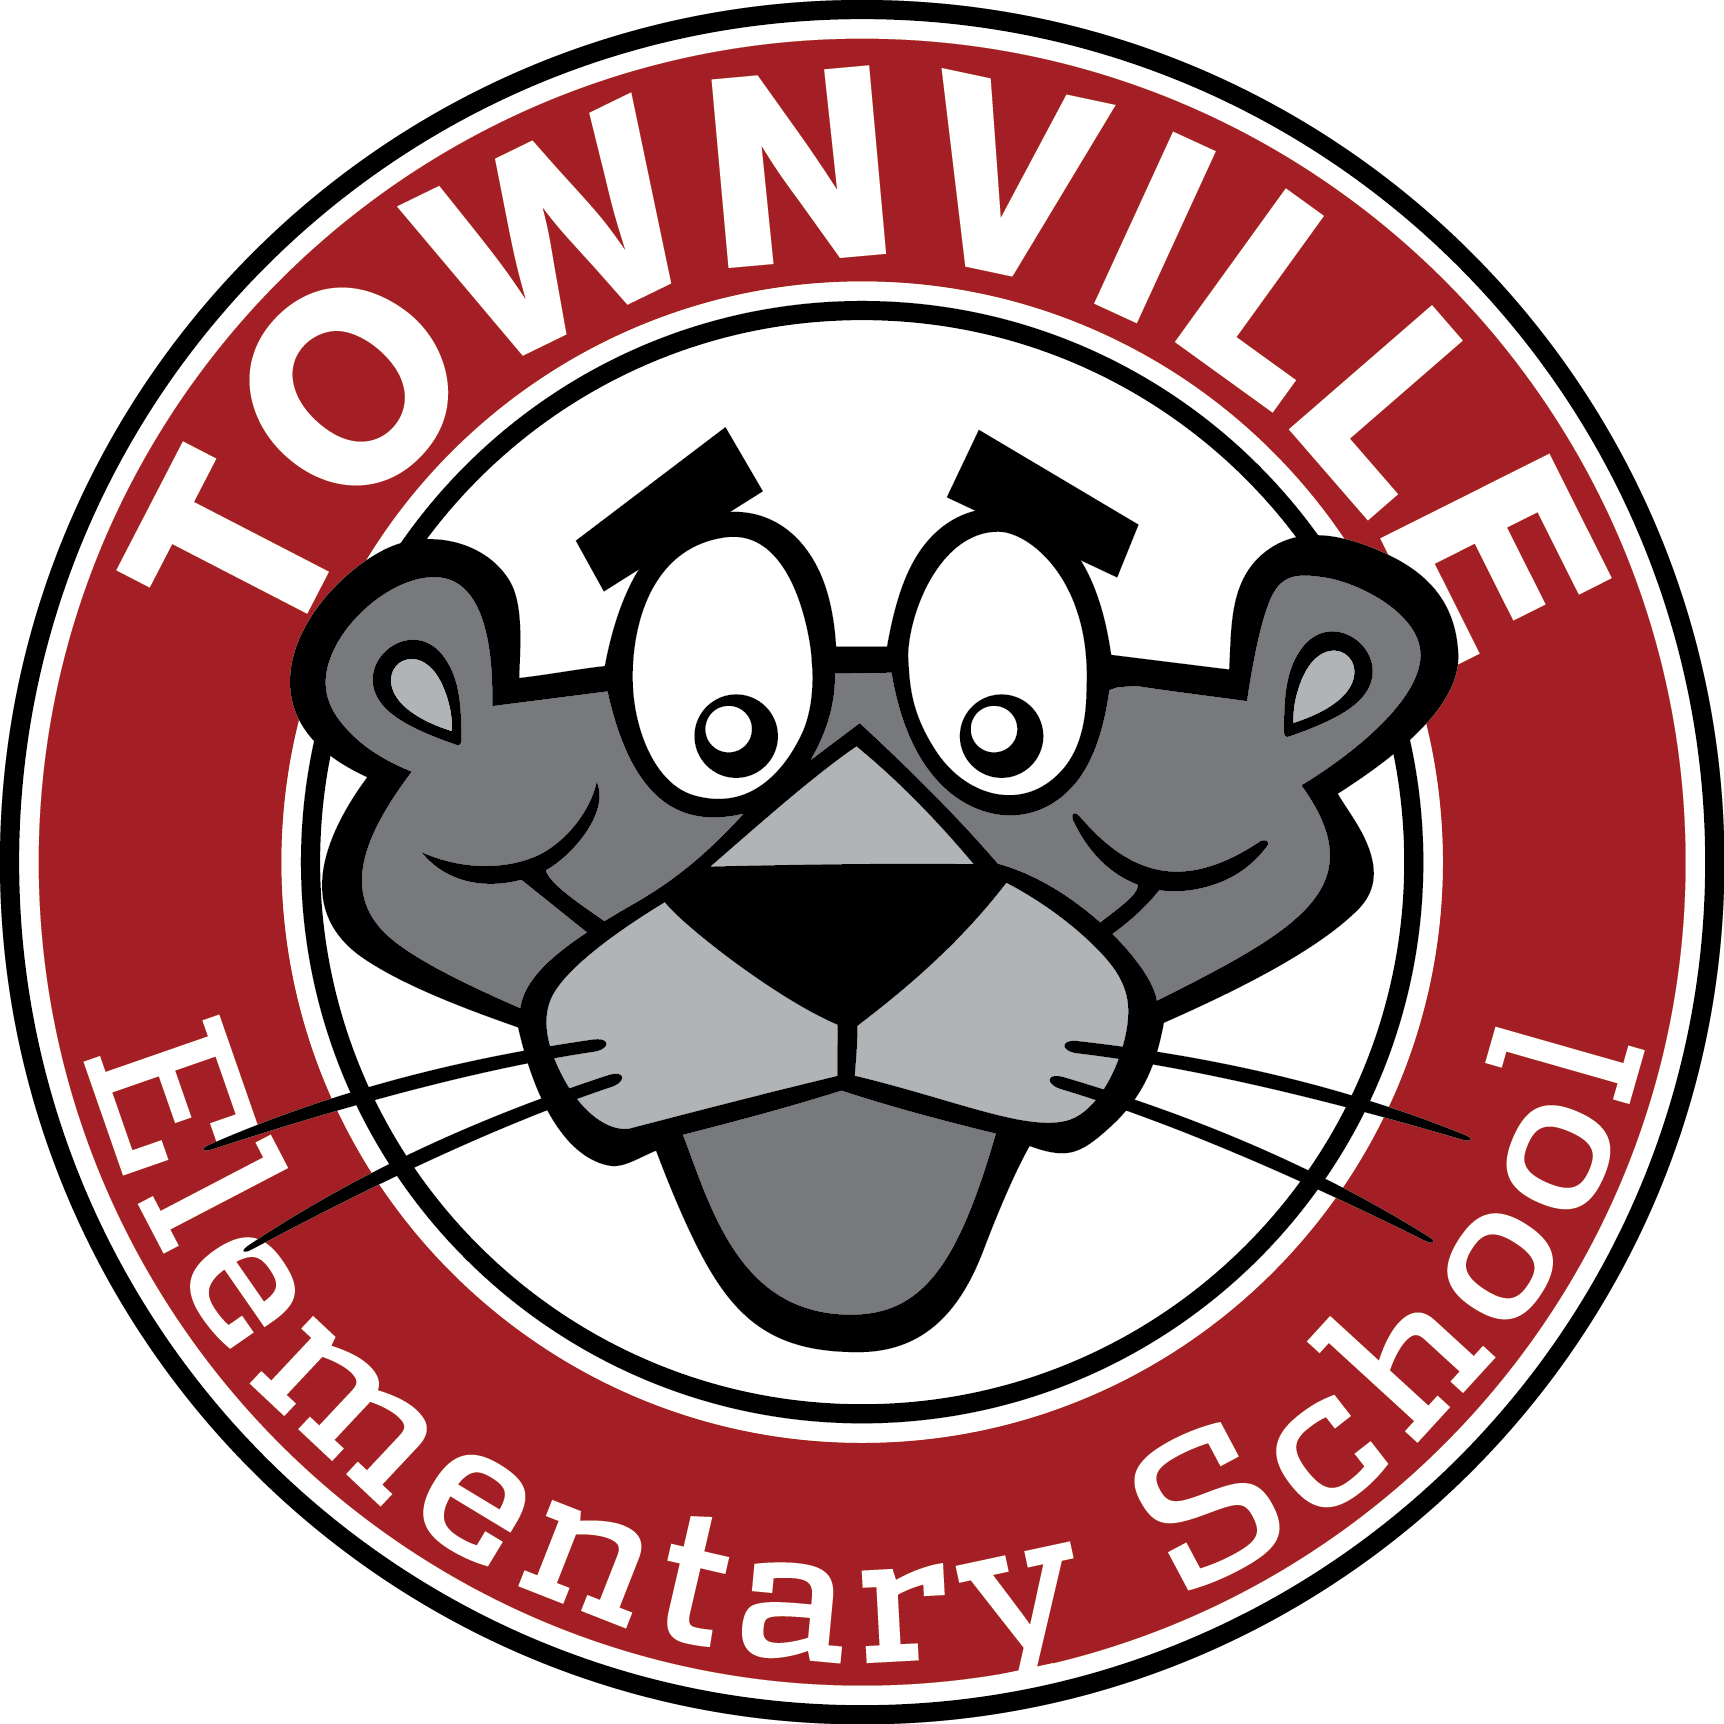 Townville Elementary